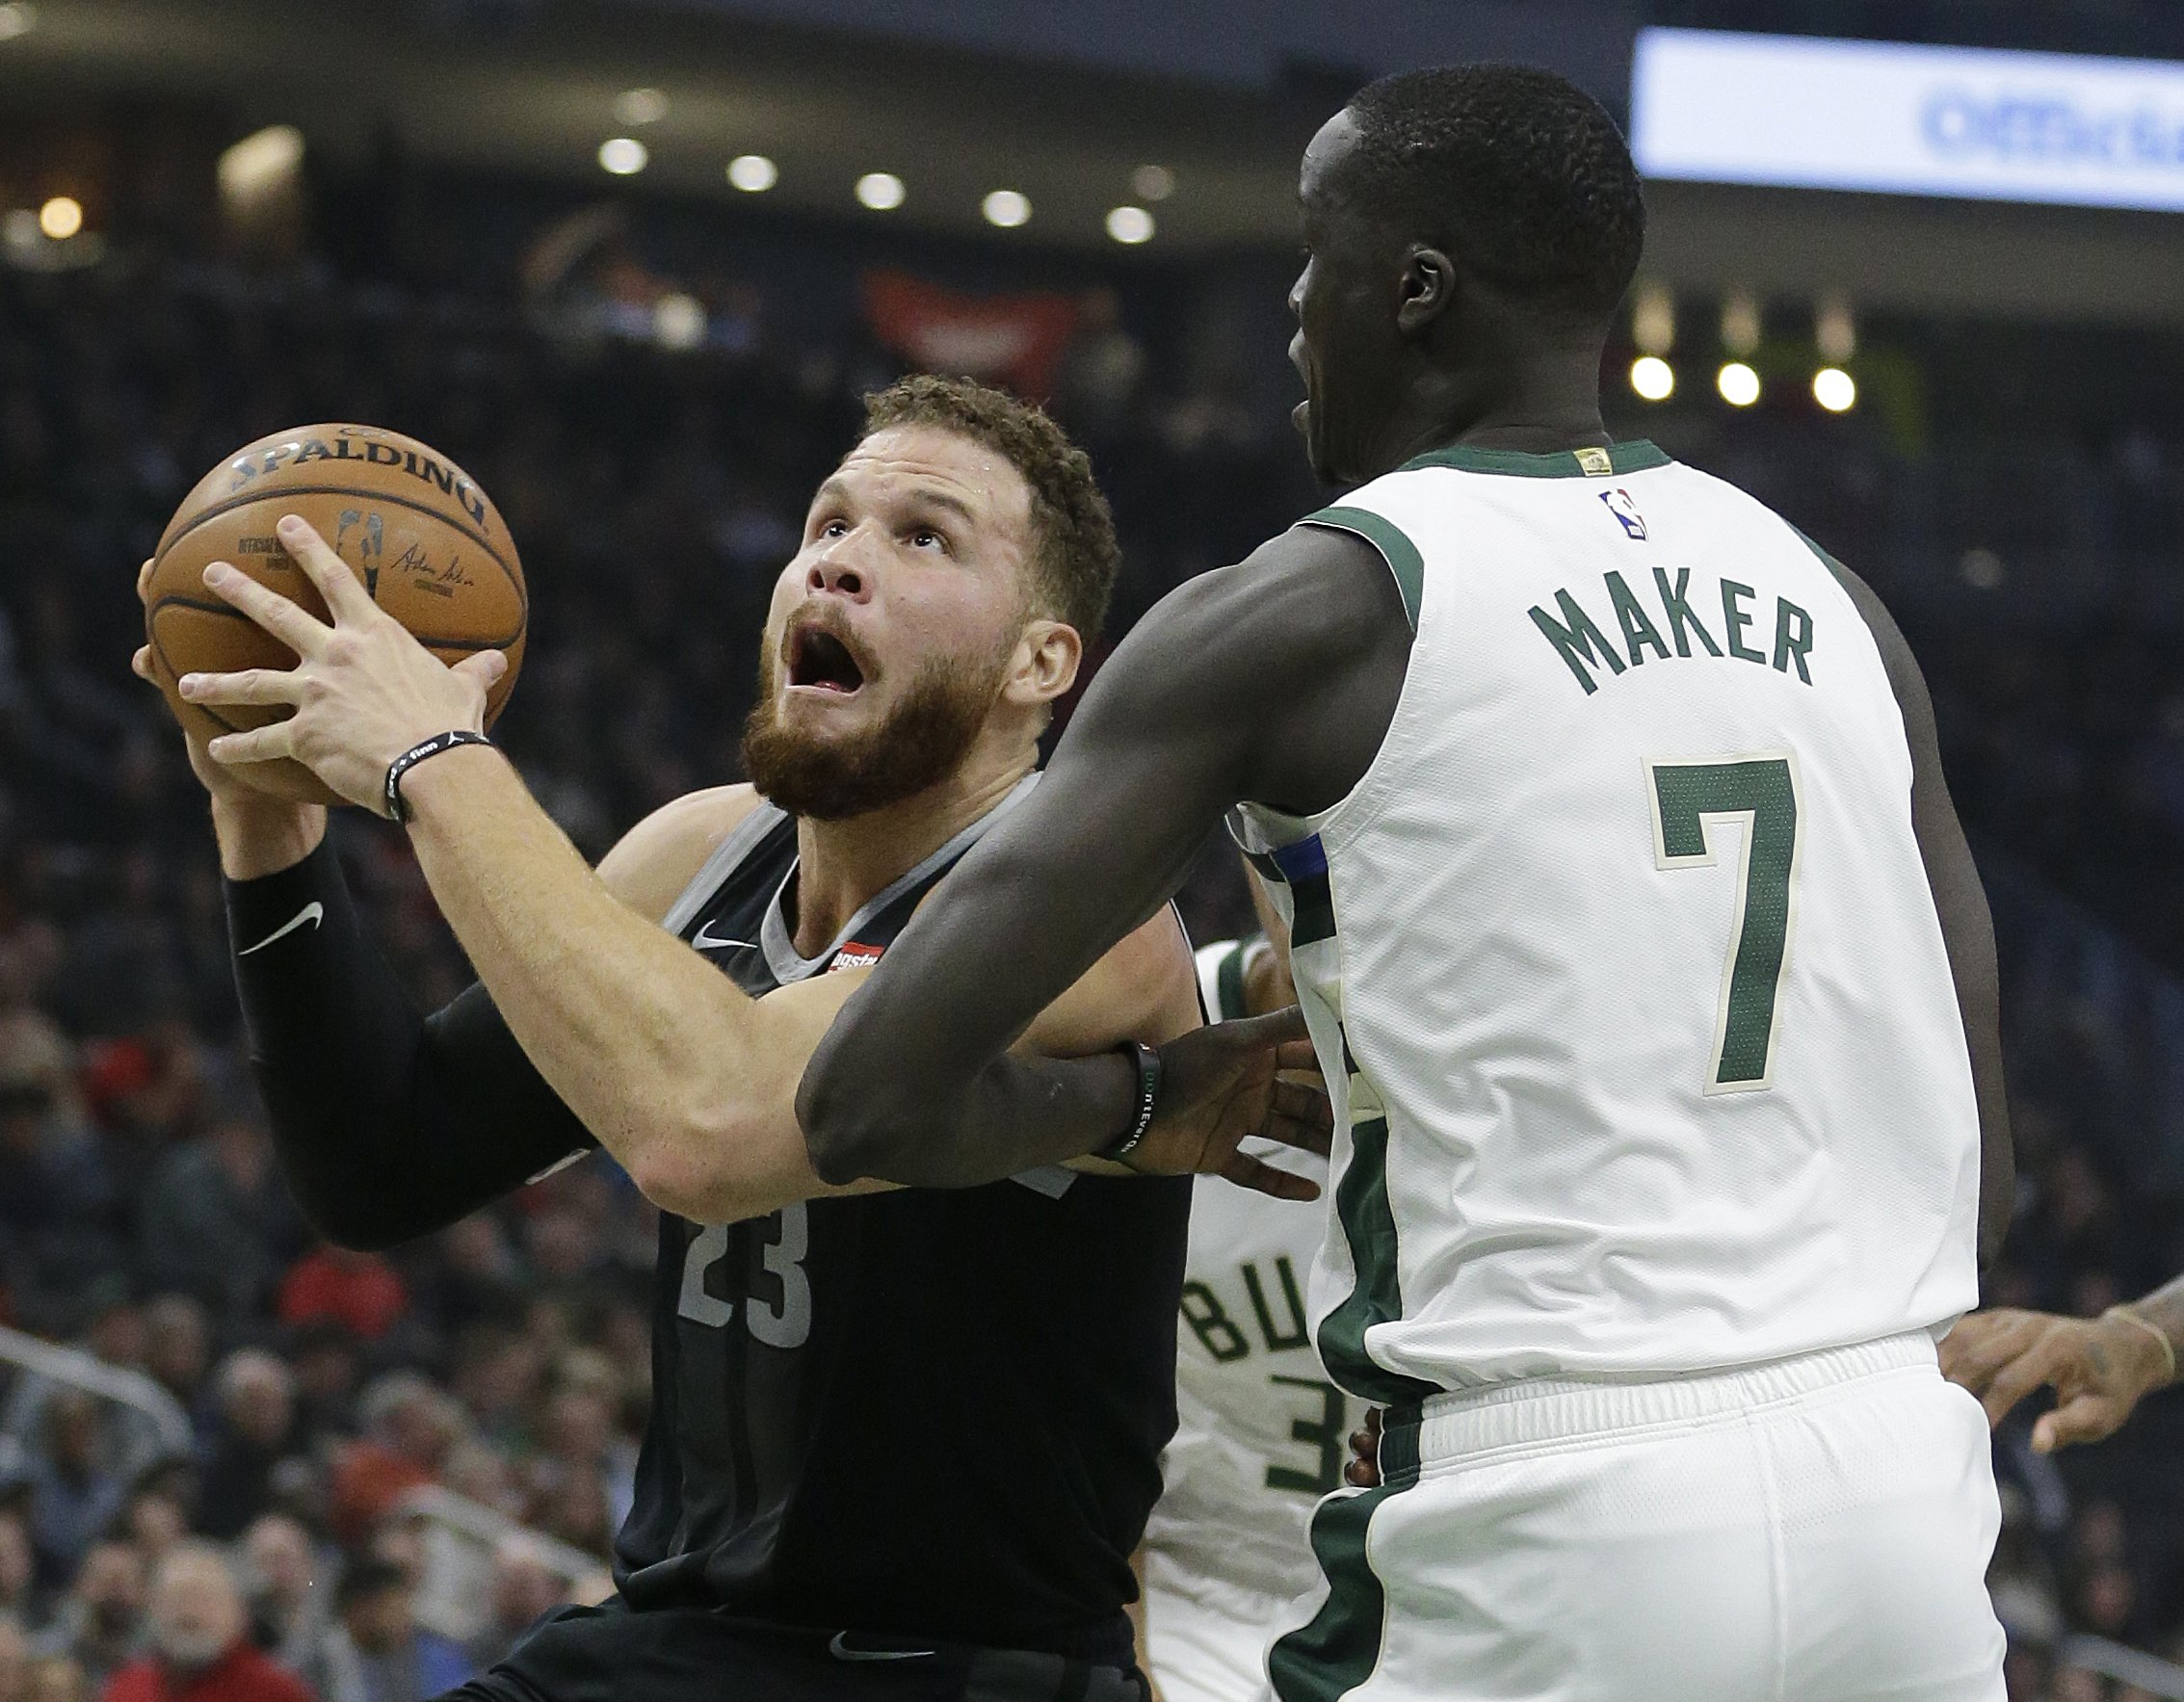 Bledsoe scores 27, as Bucks beat Pistons